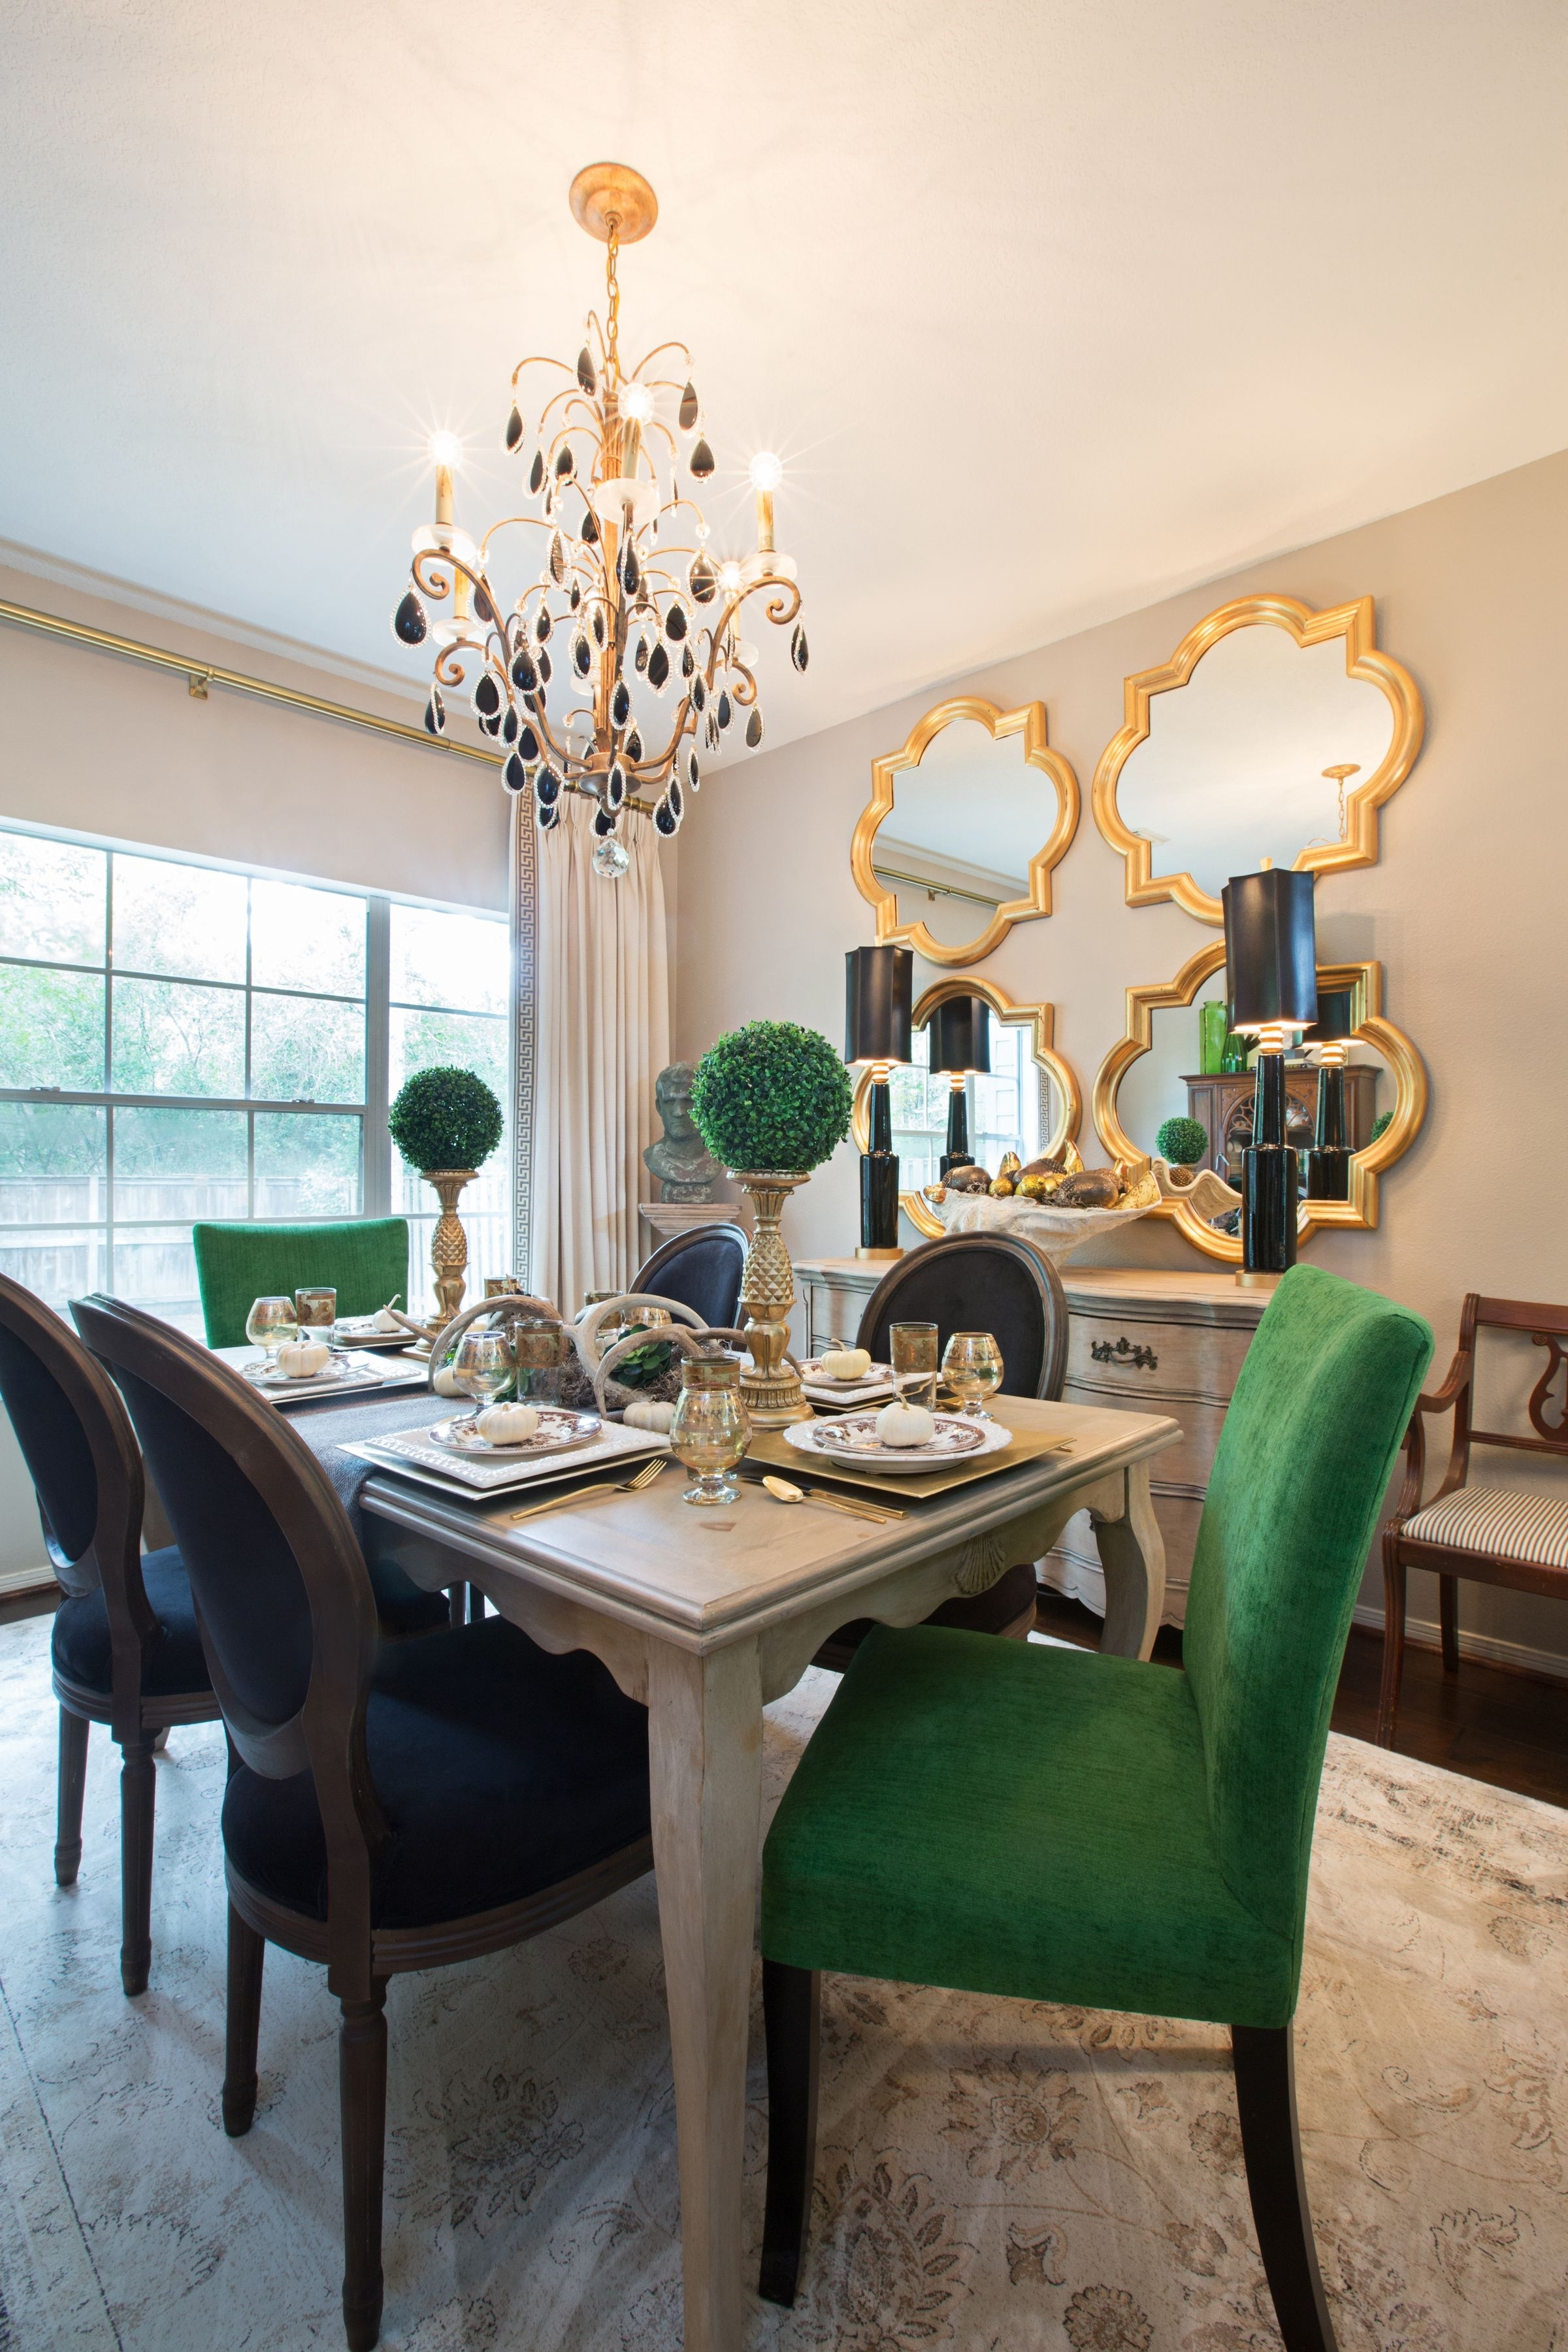 Favorite Amanda Carol Interiors Emerald Green, Gold Mirrors, Weathered Wood Pertaining To Green Dining Tables (View 5 of 25)